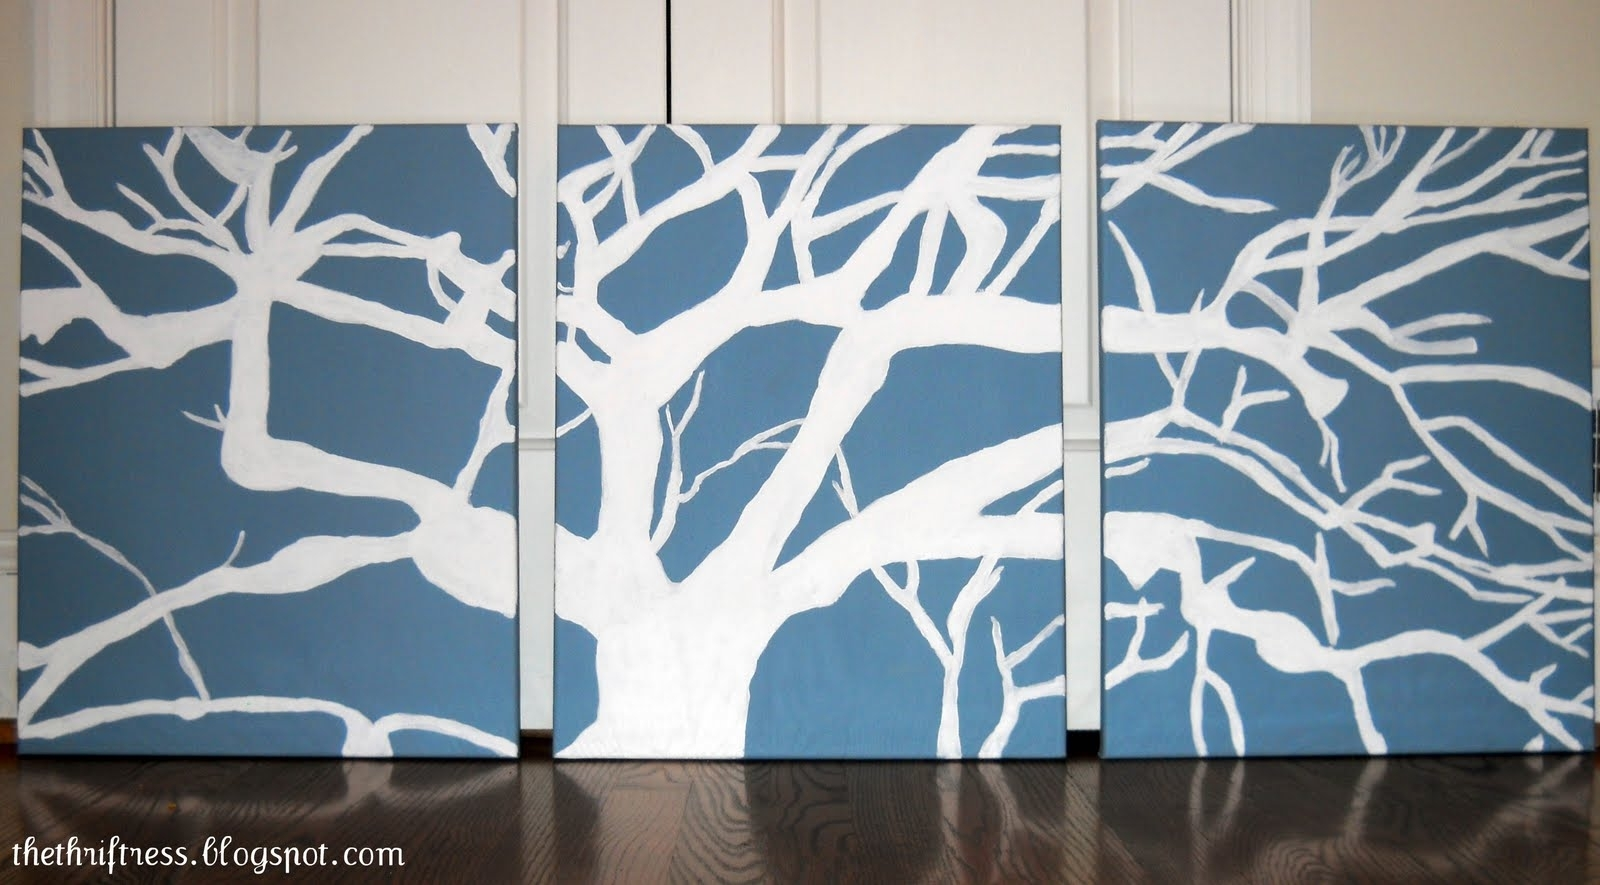 Diy Wall Art Stencils Paint Fabric - Dma Homes | #37854 for 2018 Canvas Wall Art With Fabric